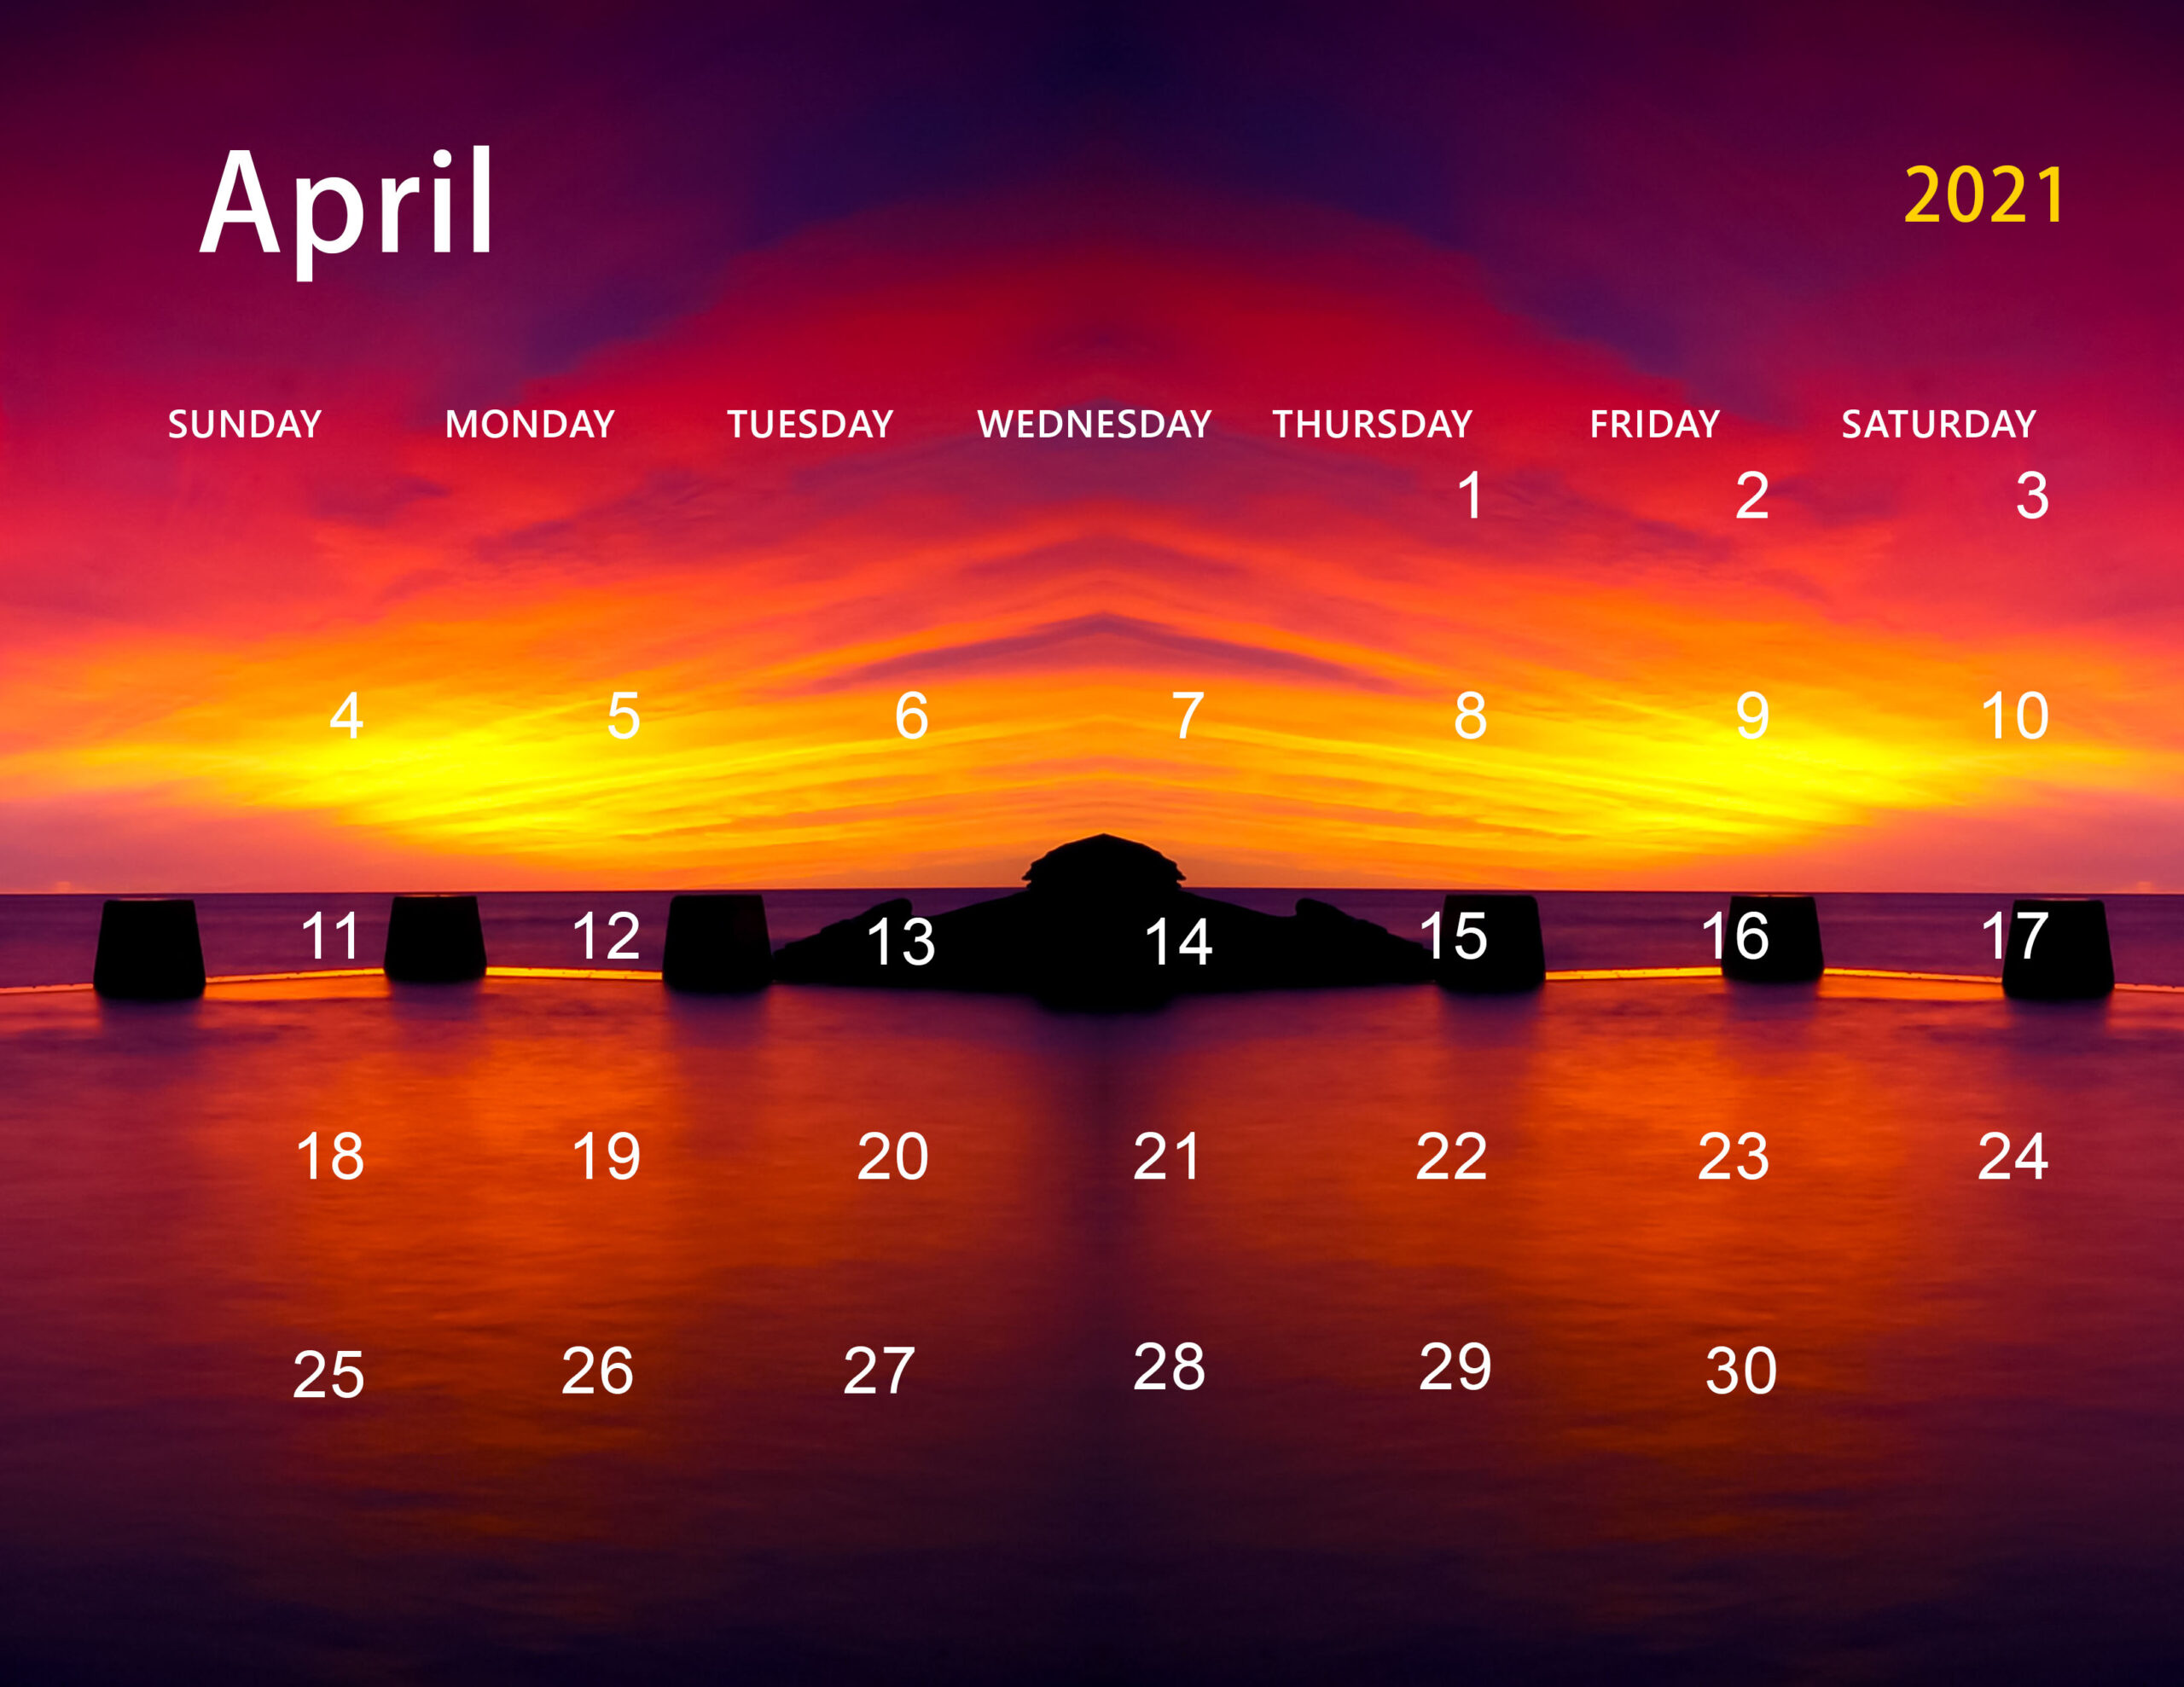 Cute April 2021 Calendar Desktop Wallpaper   Printable Calendar 2560x1978